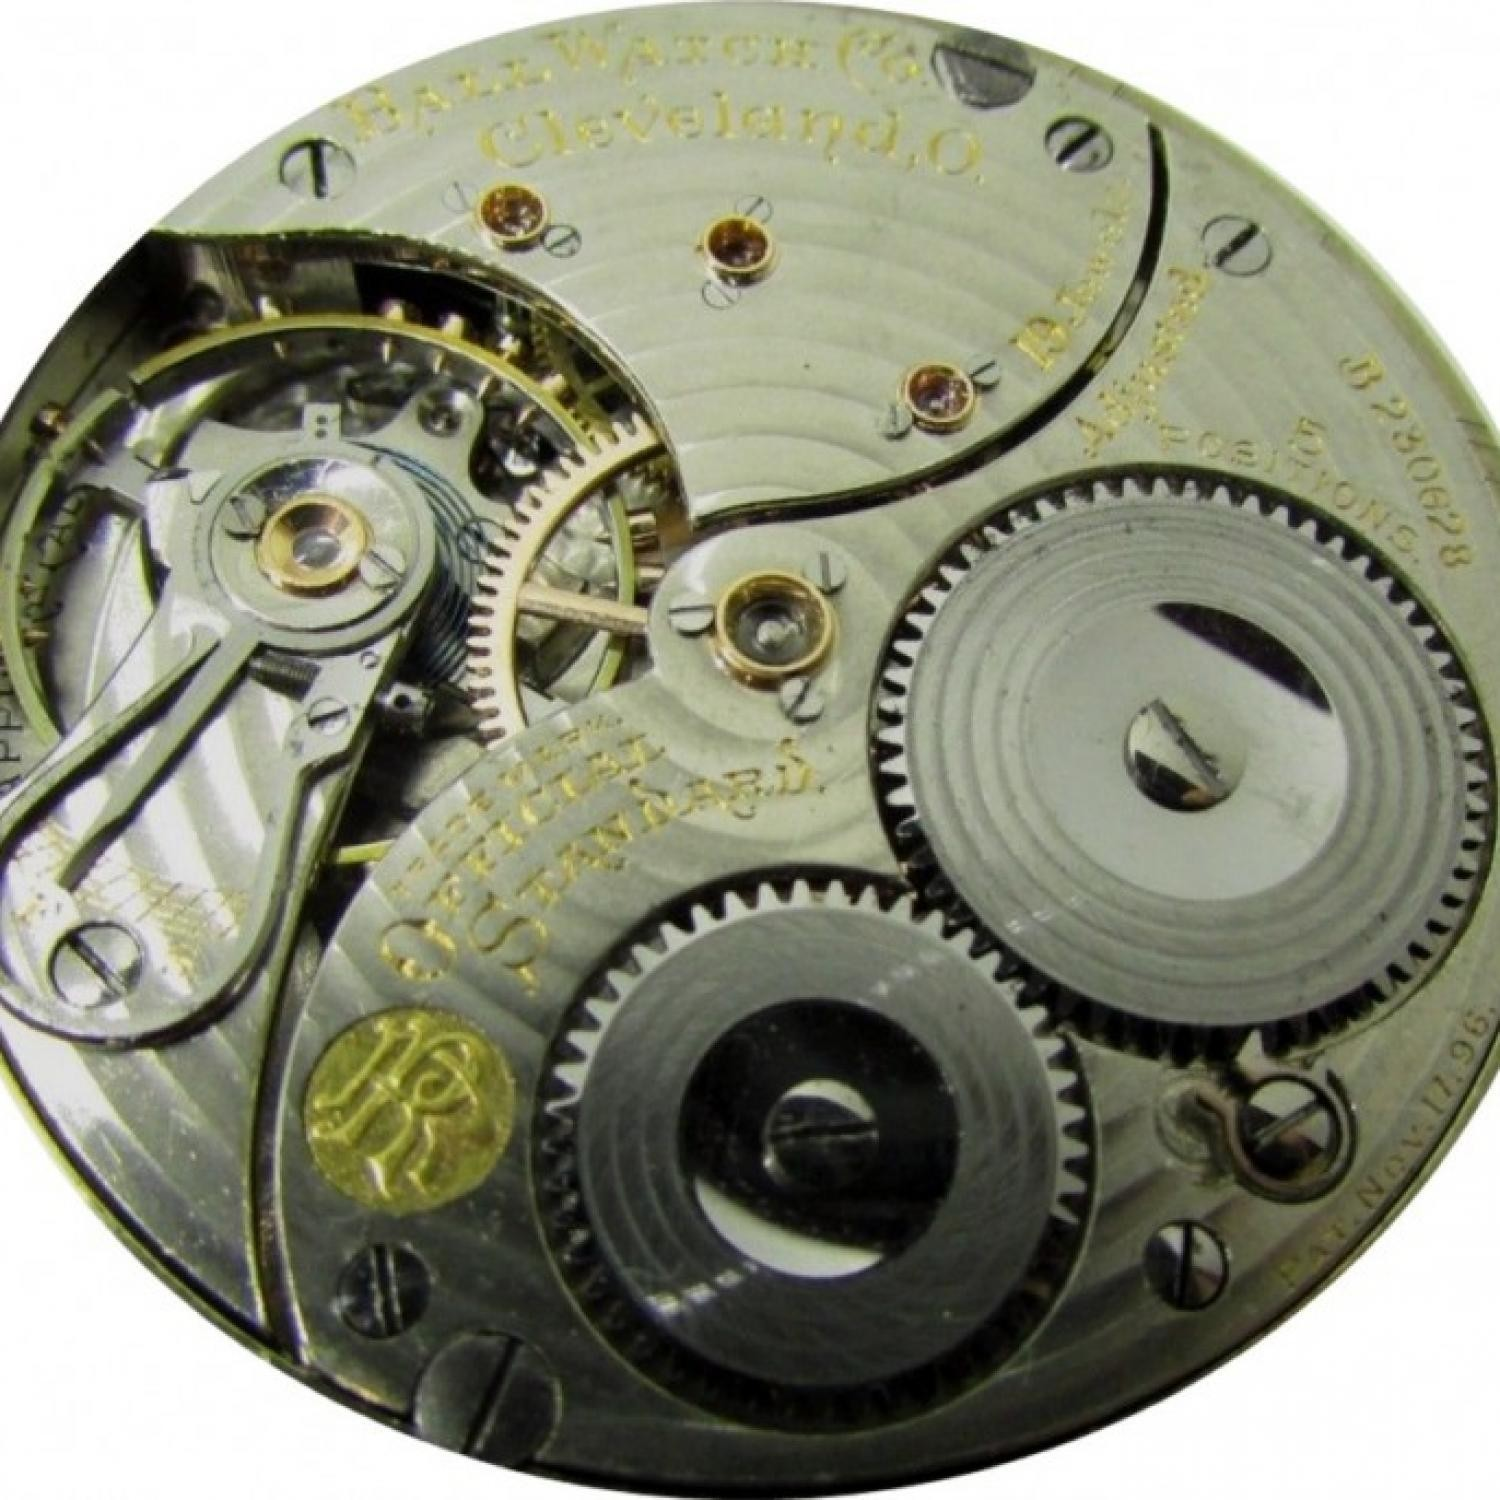 Image of Ball - Waltham Official Standard #B230629 Movement